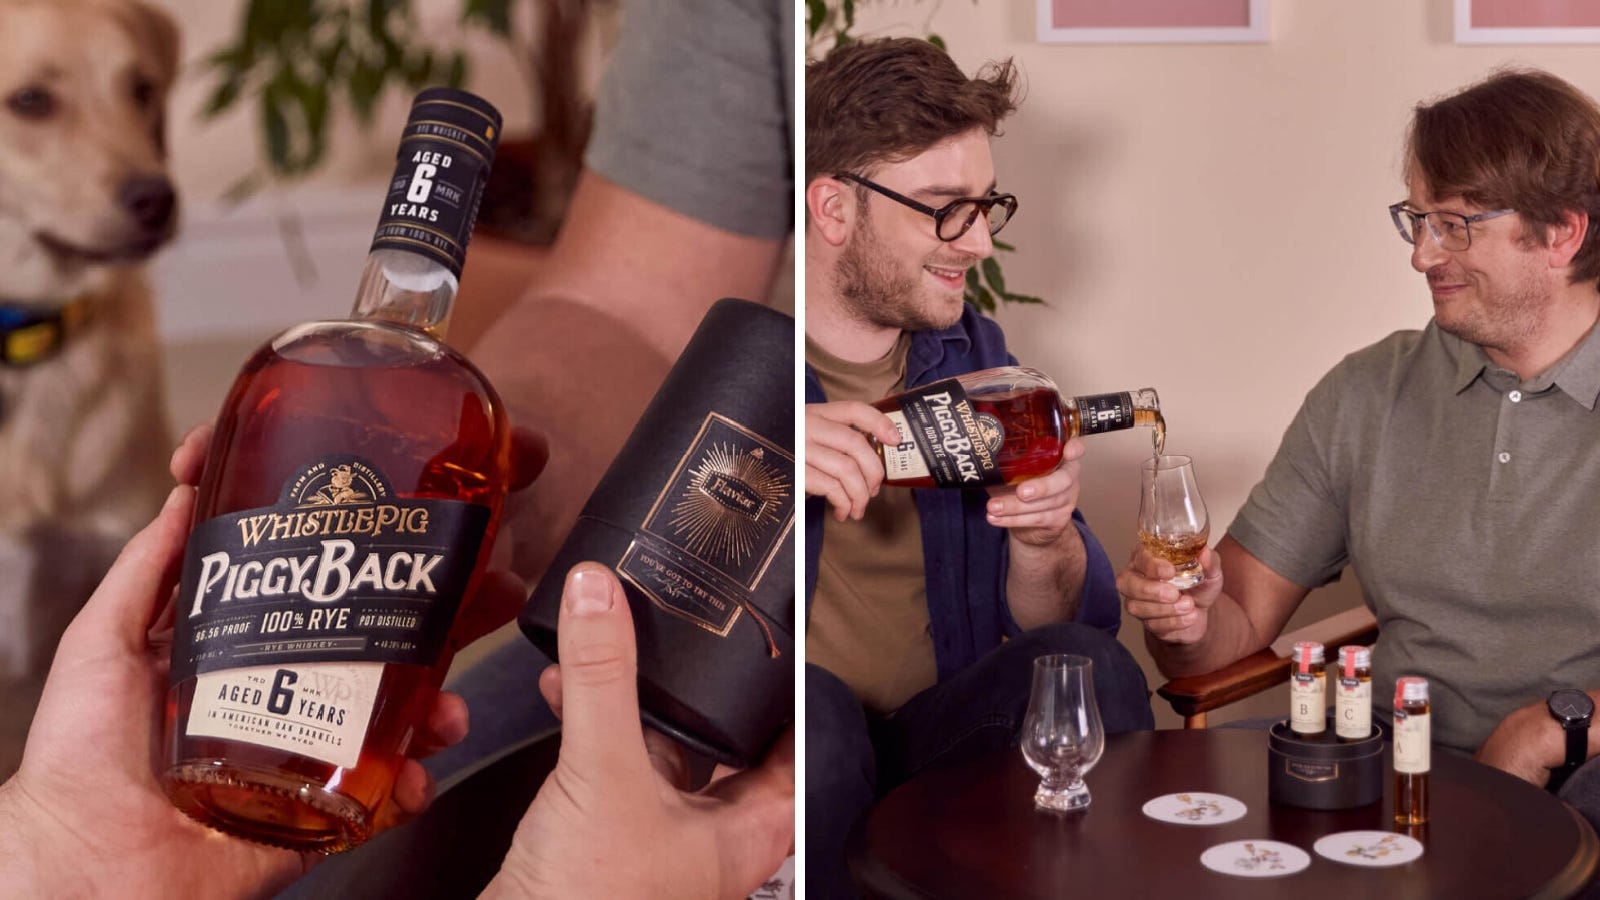 Two images; the left image is a person holding a bottle of WhistlePig Rye, and the right image is a son pouring a glass of whiskey for his father, who is very happy with his Father's day gift.